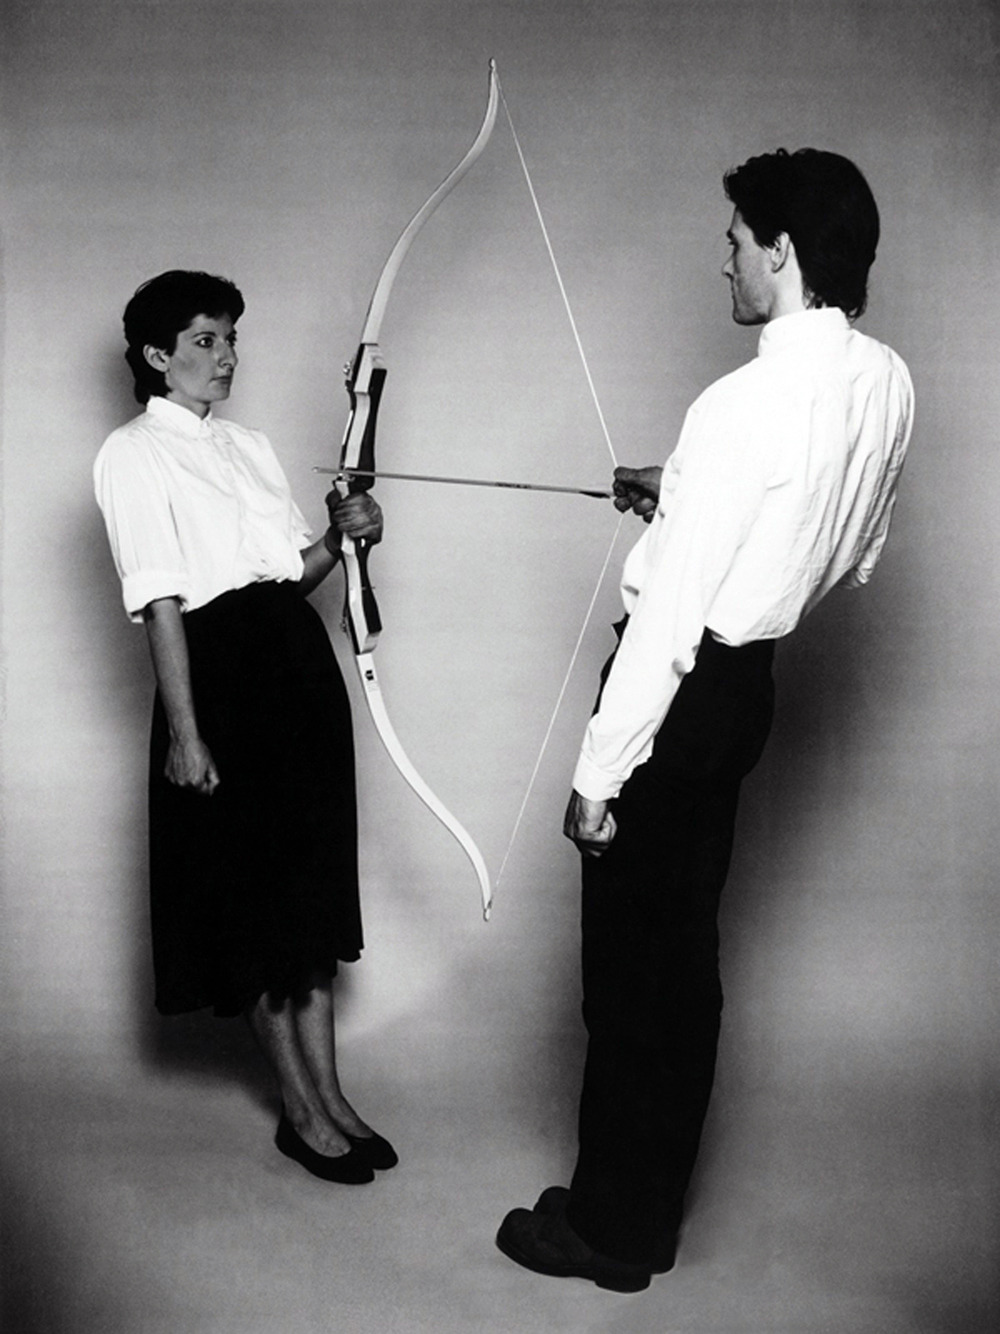 likeafieldmouse:  Marina and Ulay 1. Rest Energy (1980) 2. Relation in Space (1976) 3. Imponderabilia (1977) 4. Breathing In Breathing Out (1978) 5. Interruption in Space (1977) 6. Aaa Aaa (1978) 7. Relation in Time (1977)